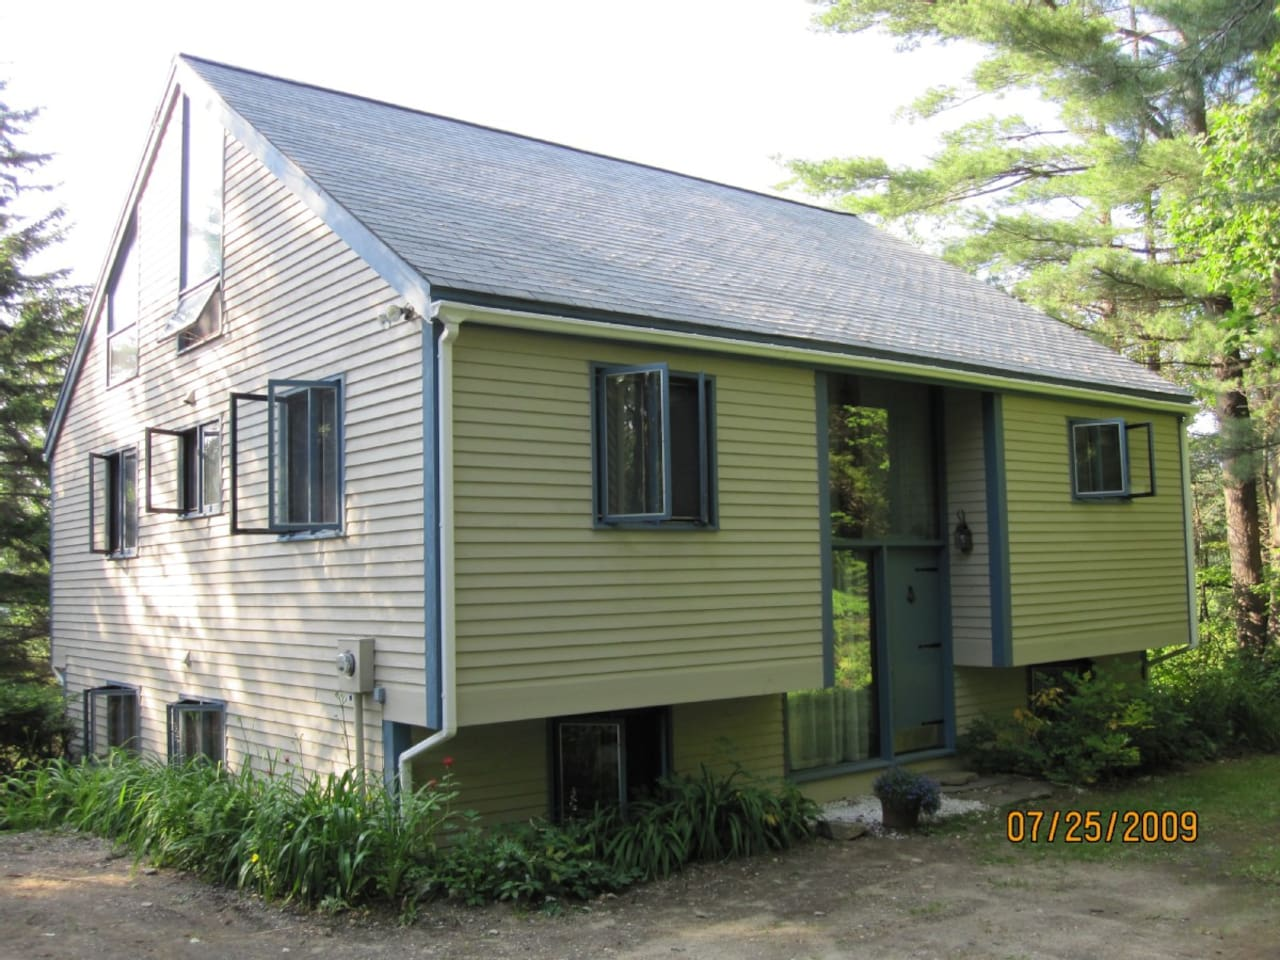 3 level home on Spruce Lake and 15 min to Mt. Snow with great view of the Deerfield Valley